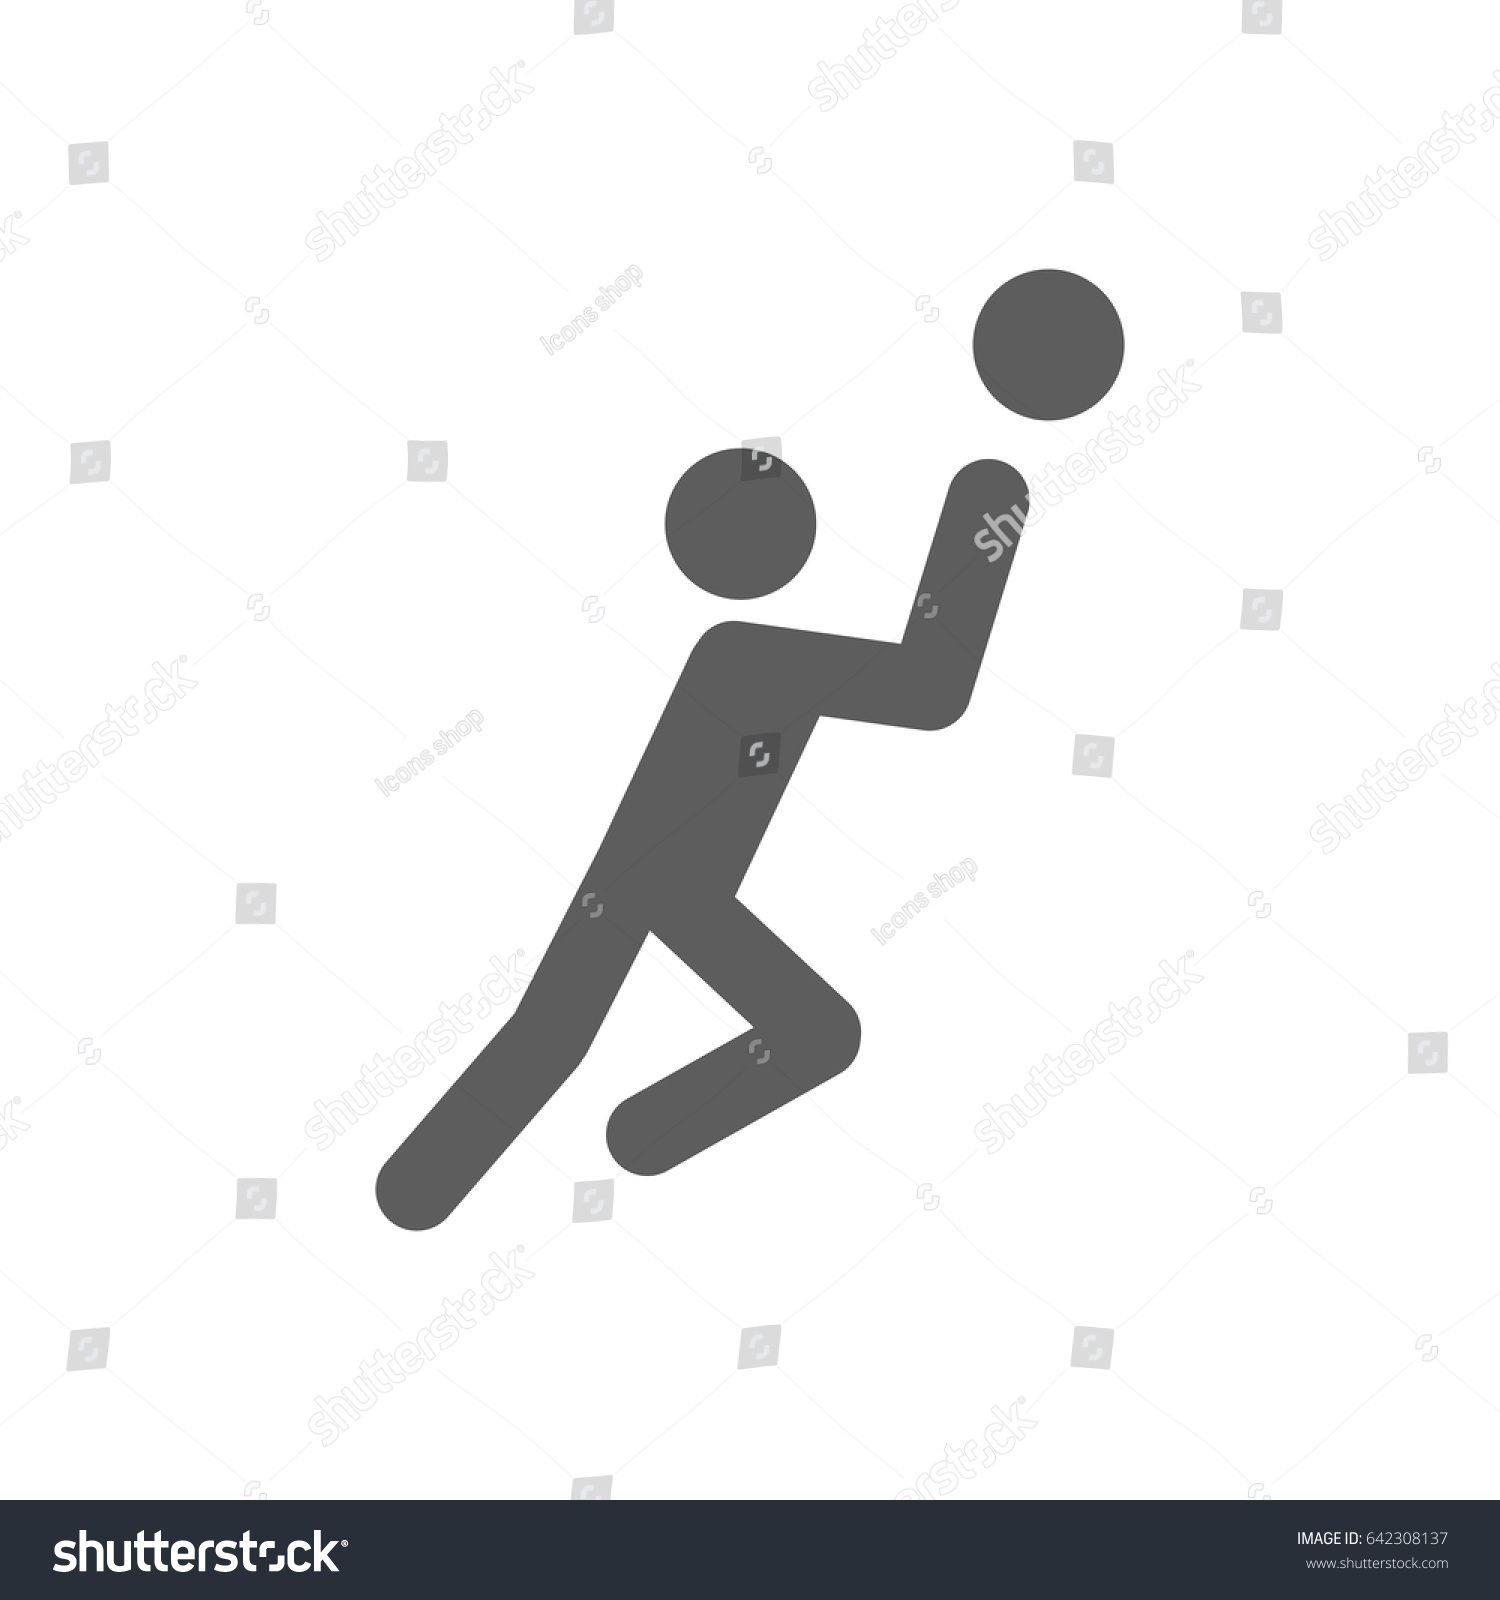 Basketball player icon trendy flat style stock vector 642308137 basketball player icon in trendy flat style isolated on white background award symbol for your biocorpaavc Choice Image